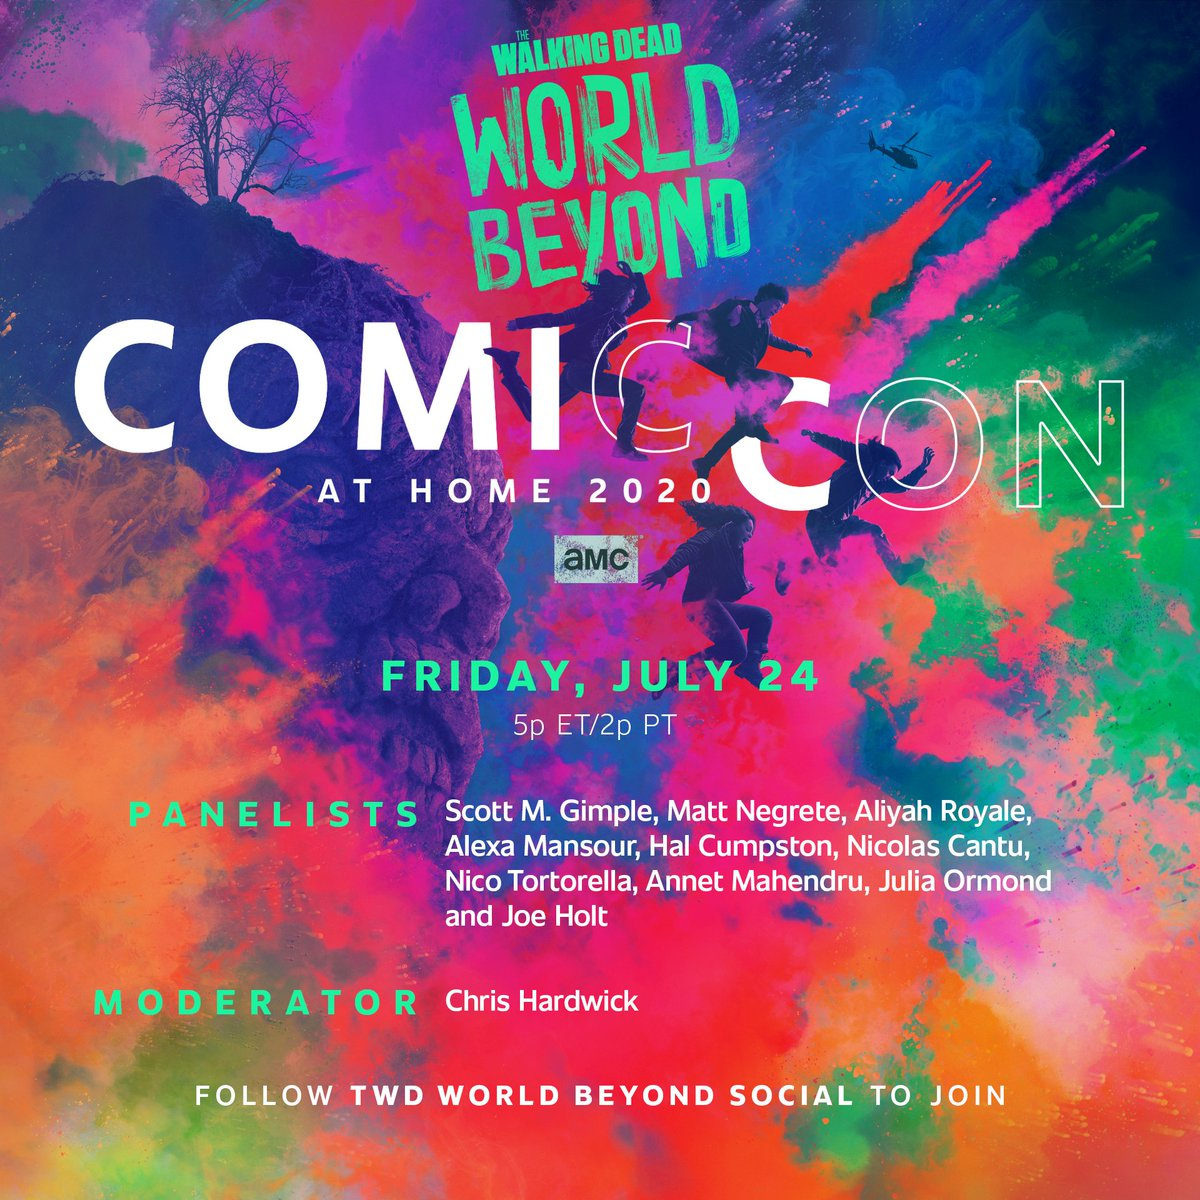 Replying to @TWDWorldBeyond: #TWDWorldBeyond is coming to you. Don't miss their #ComicConAtHome panel on July 24th.